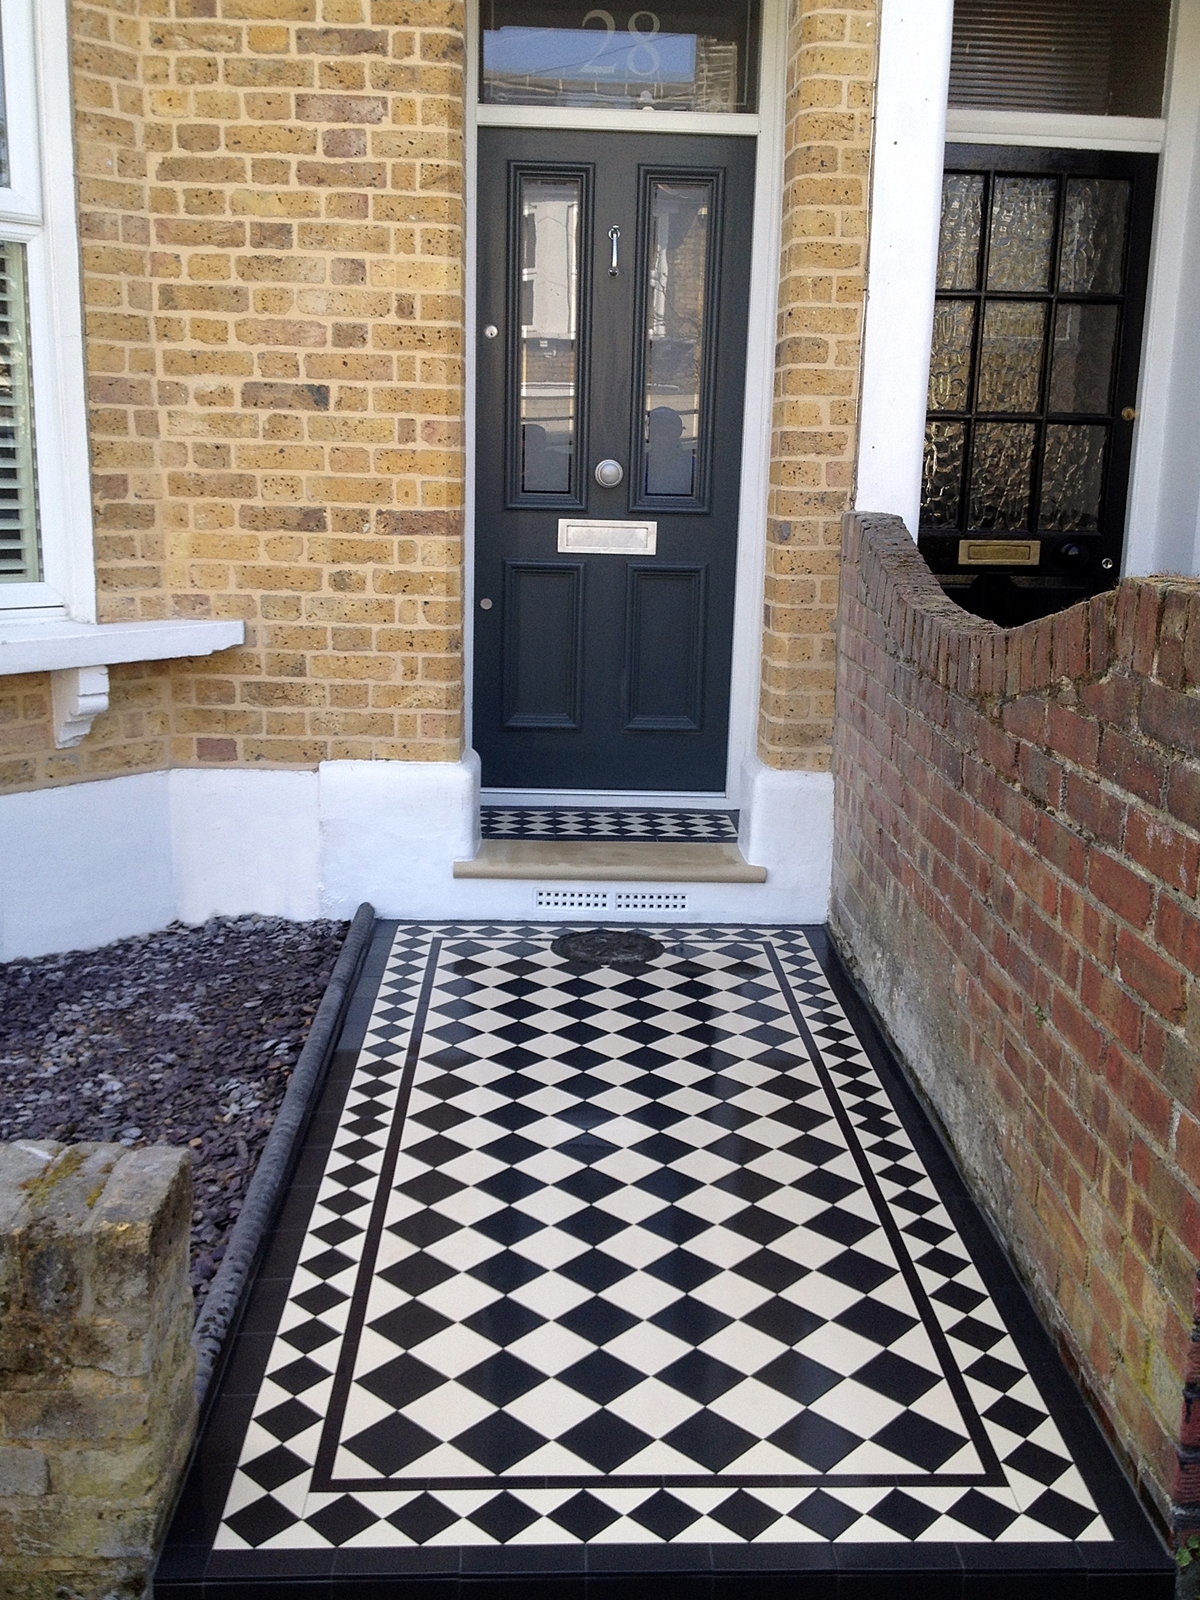 100mm 4 inch black and white tiles with 70mm 3 inch diamond border victorian mosaic tile path greenwich london